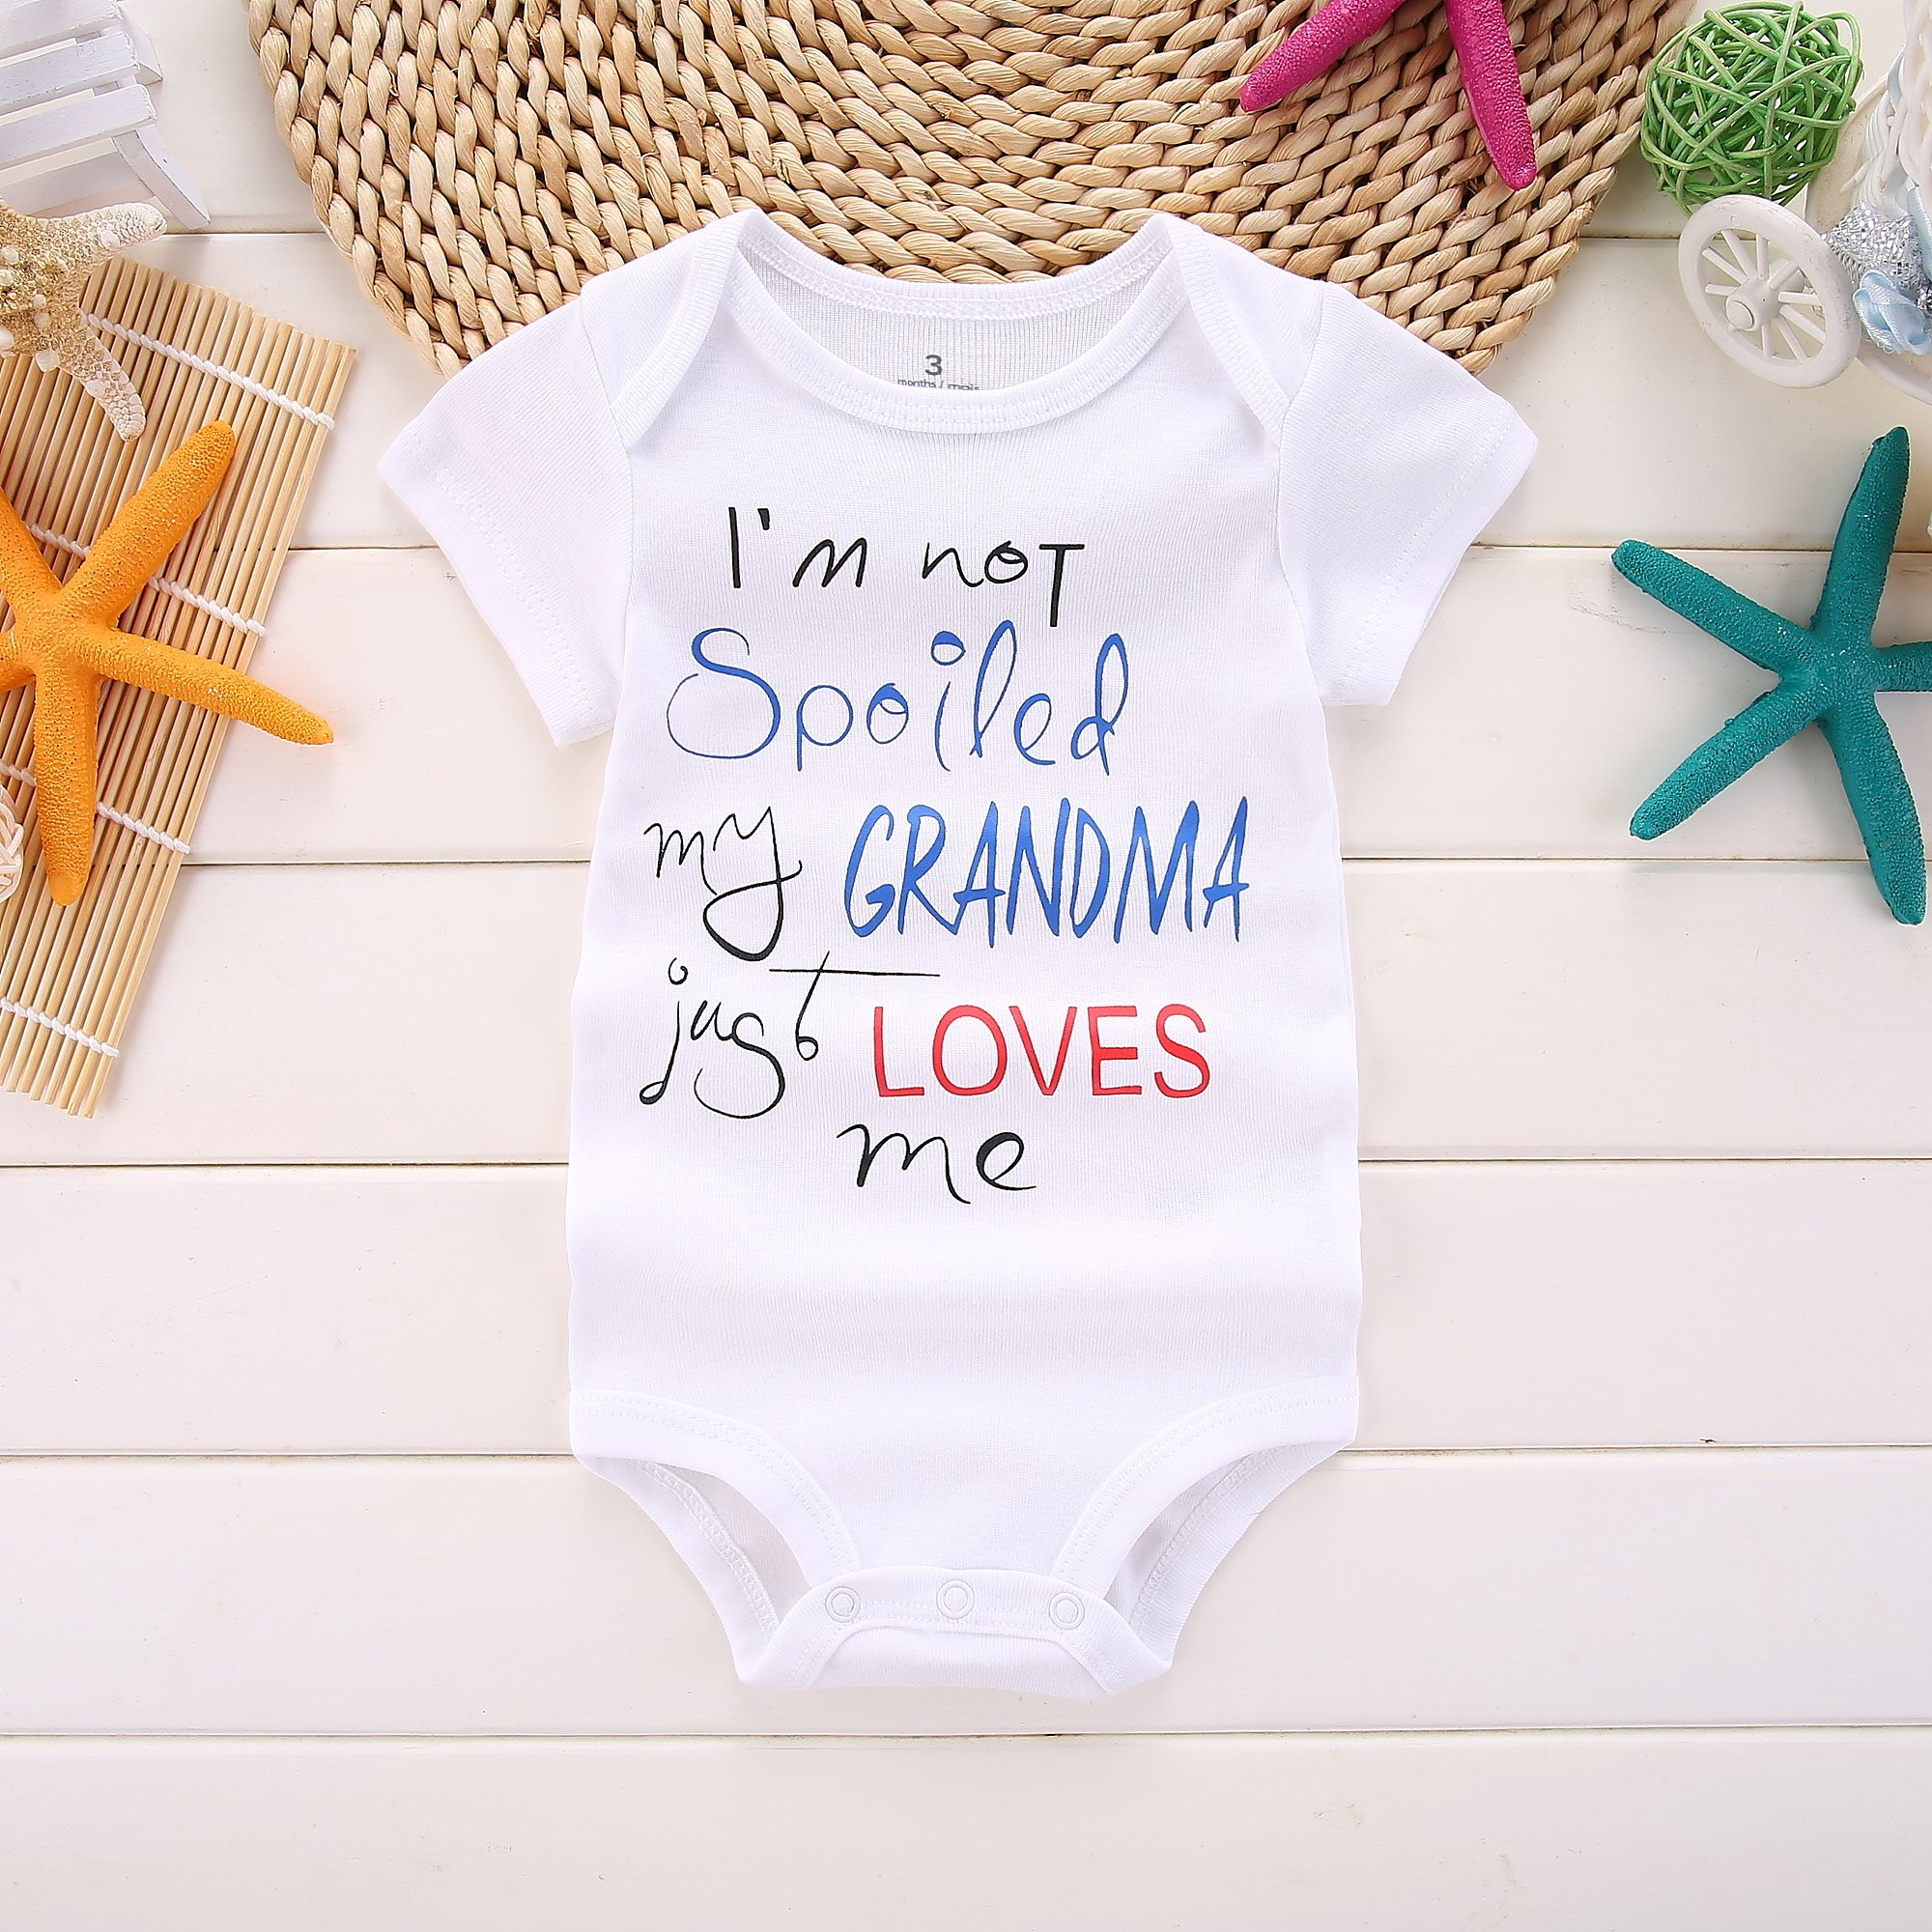 Amberetech Newborn Baby Summer Clothes Romper Outfit I'm Not Spoiled My Grandma Just Loves Me Baby Boys Girls T-Shirt Jumpsuit (White, 0-3 Months) by Amberetech (Image #2)